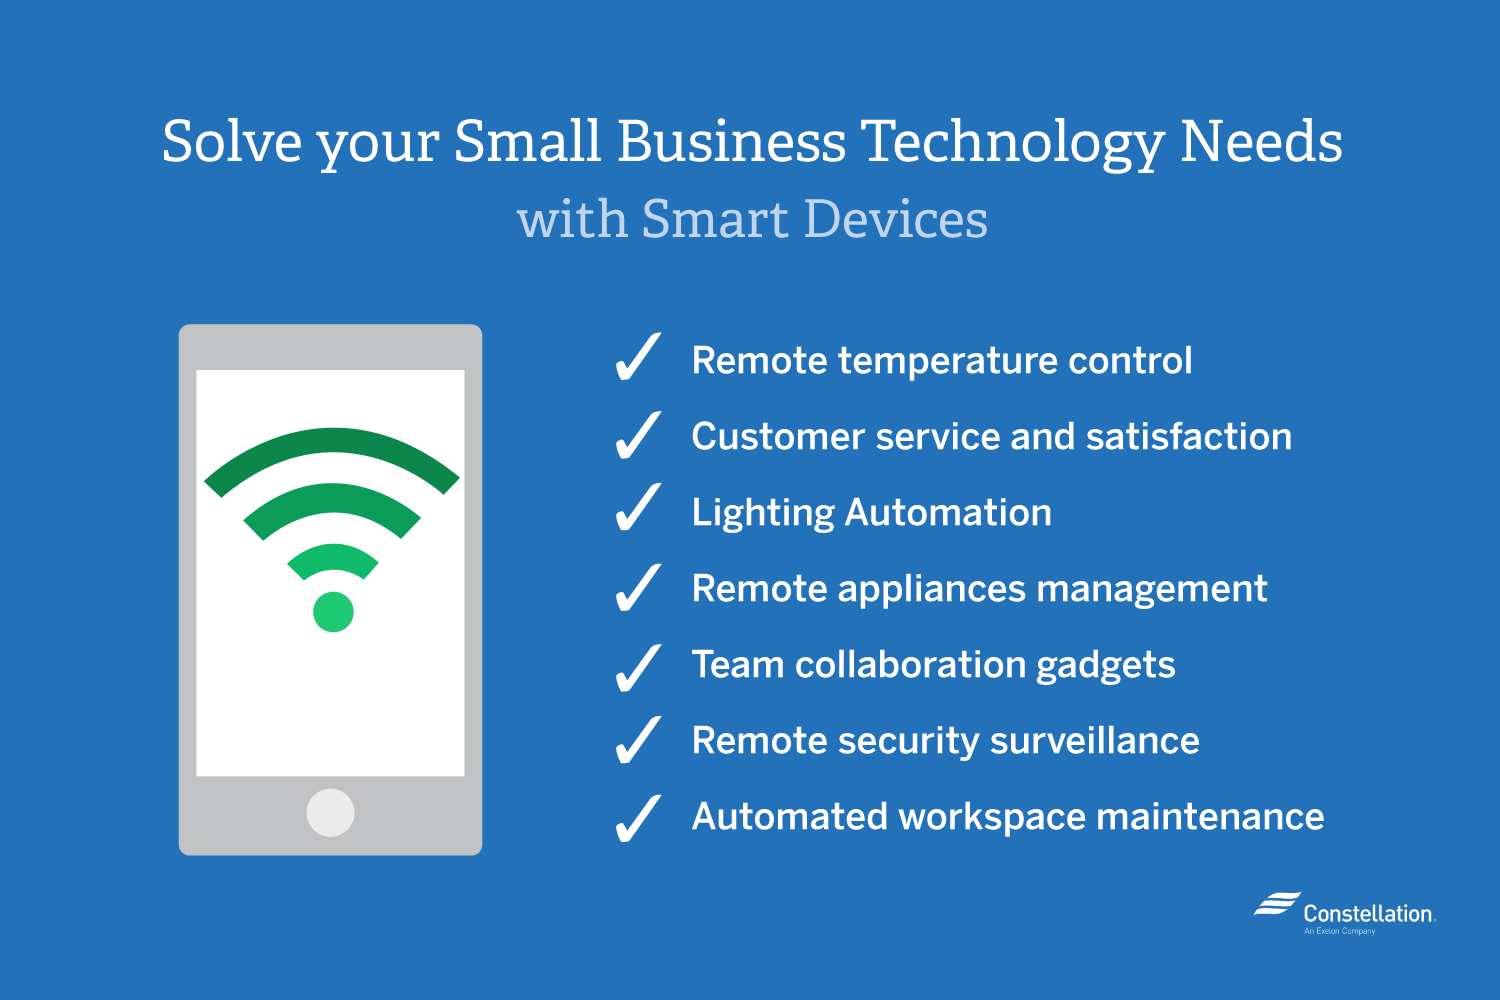 You can solve your small business technology needs with smart devices to remotely control temperature, etc.